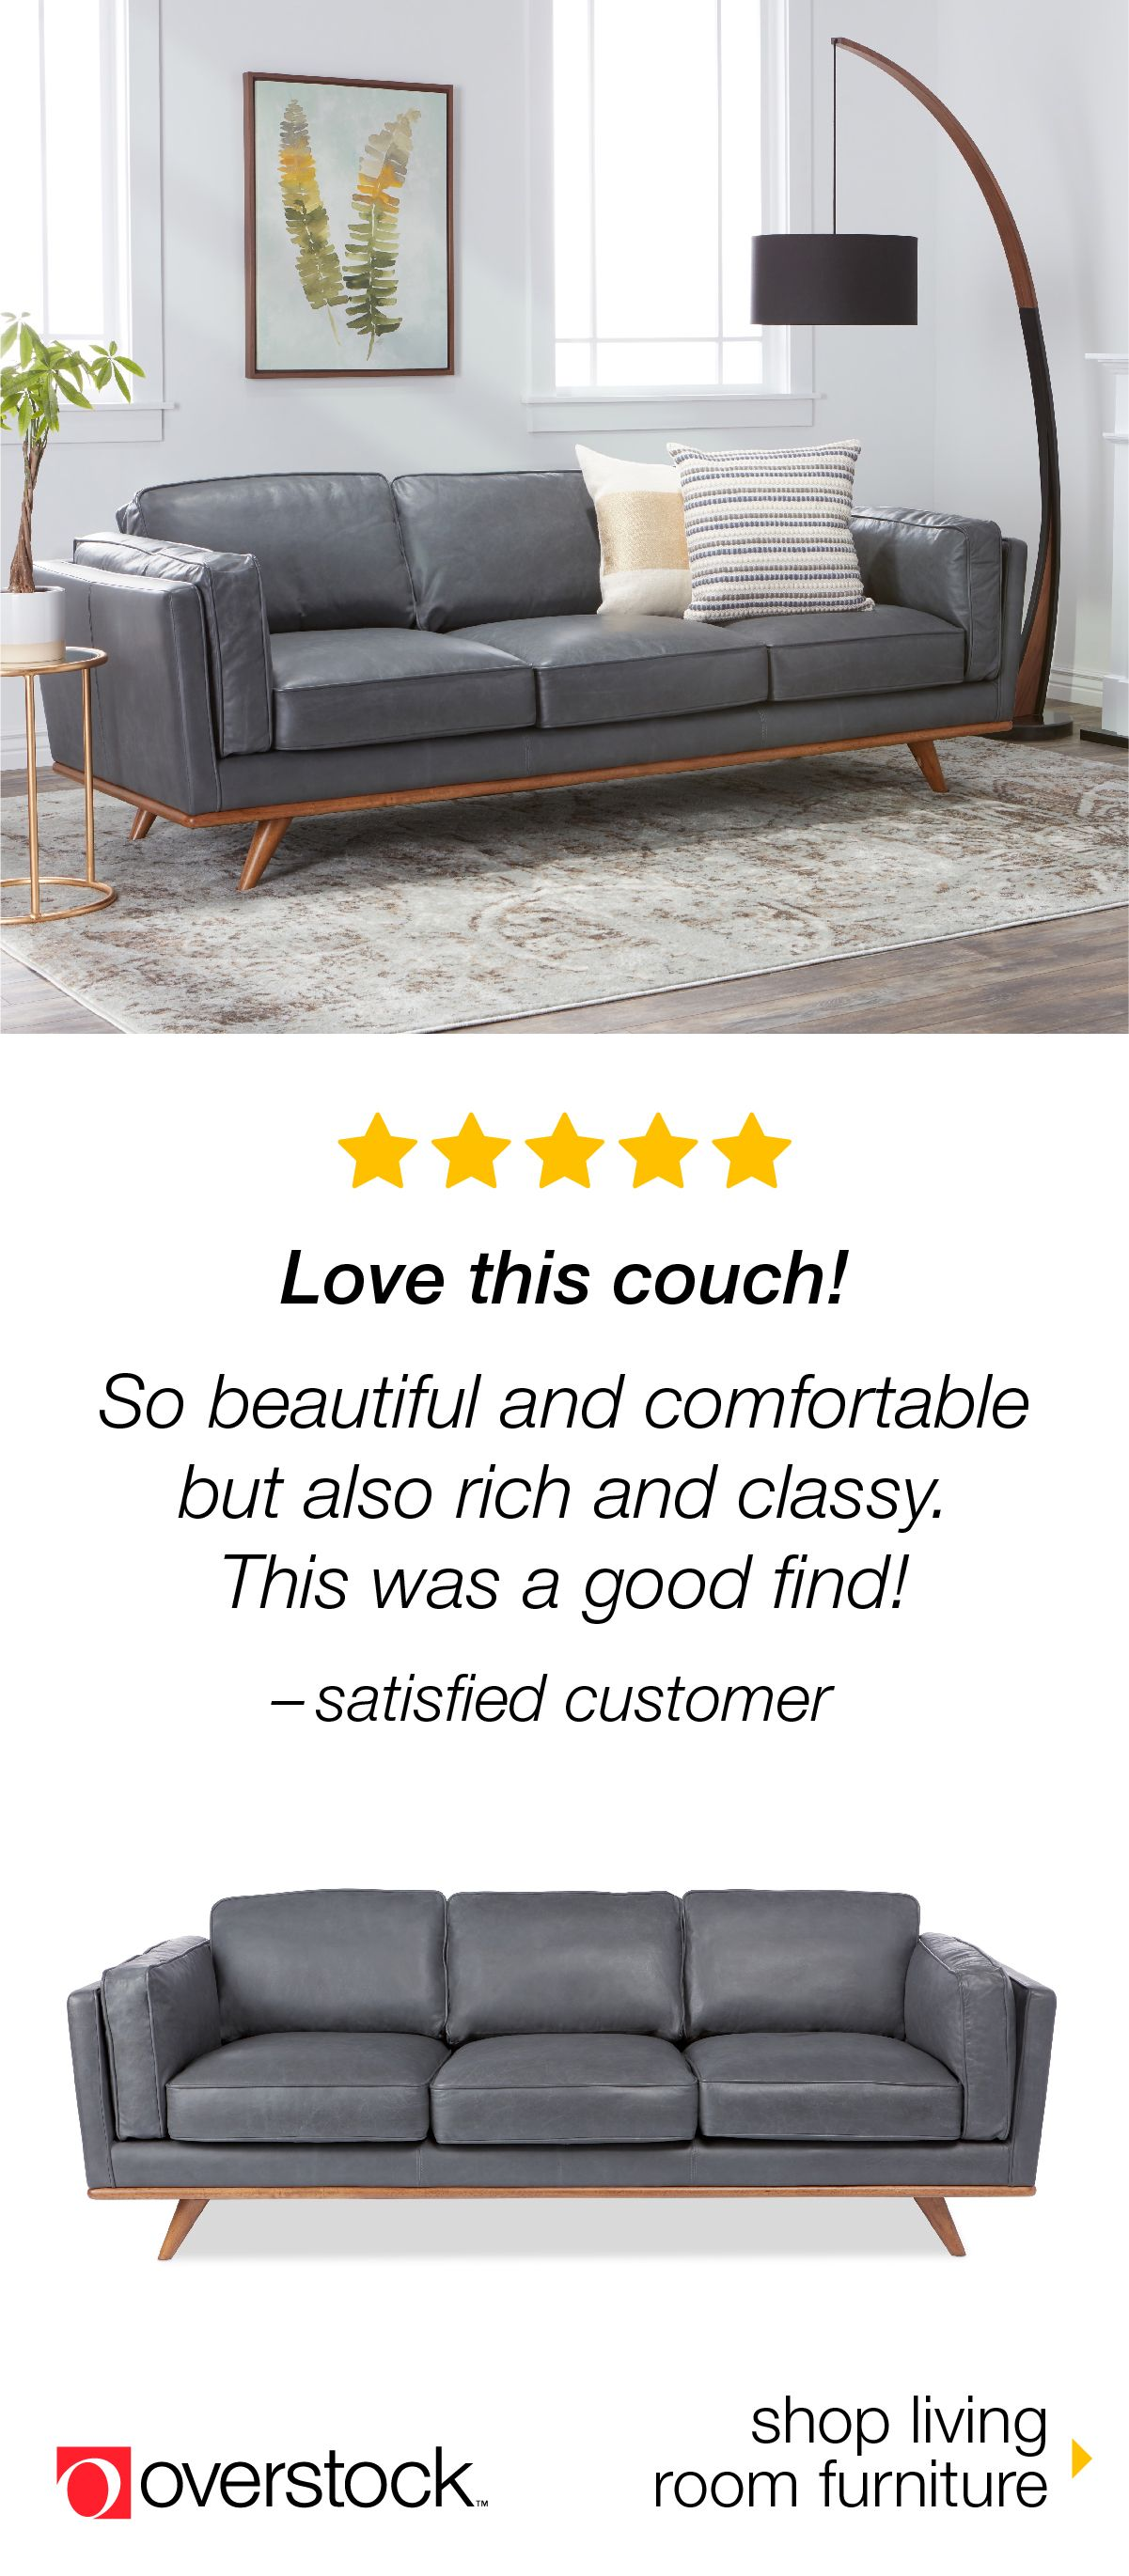 Find The Perfect Sofa For Your Space At Overstock.com. Shop Our Selection Of